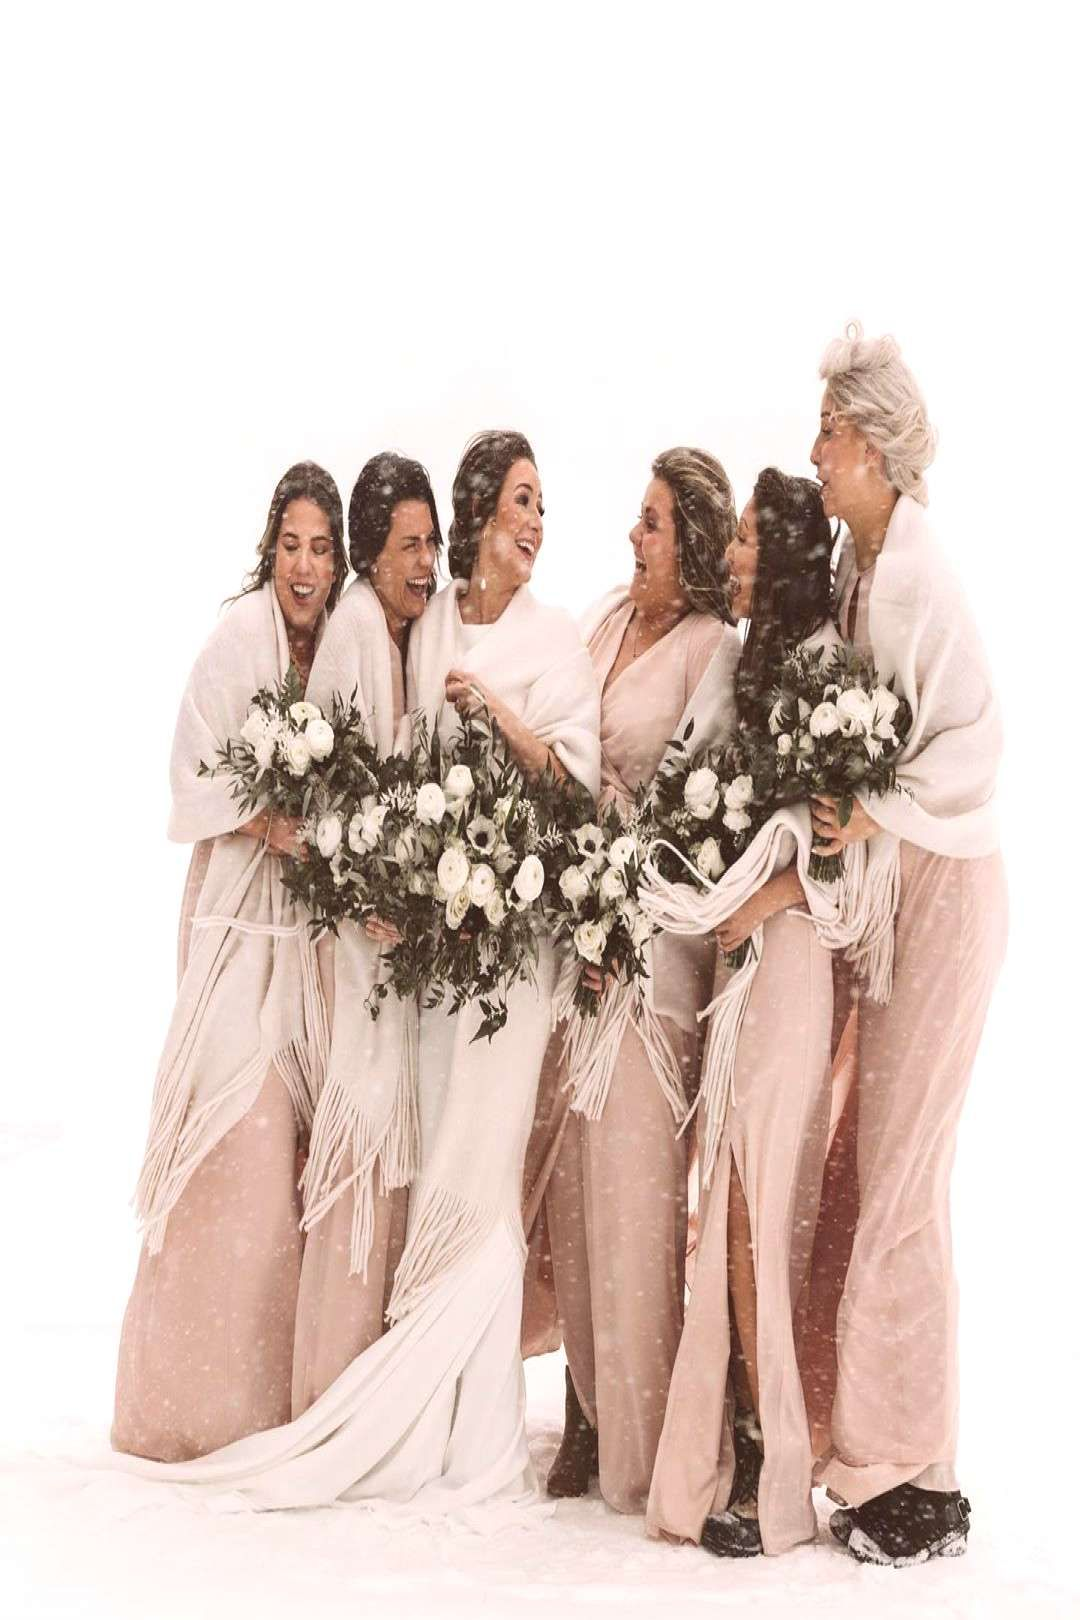 #peoplewedding #incredible #yourself #friends #outdoor #would #stand #dress #find #some #who #and #in #a #4 Find yourself some incredible friends who would stand in a dress You can find Winter wedding an...